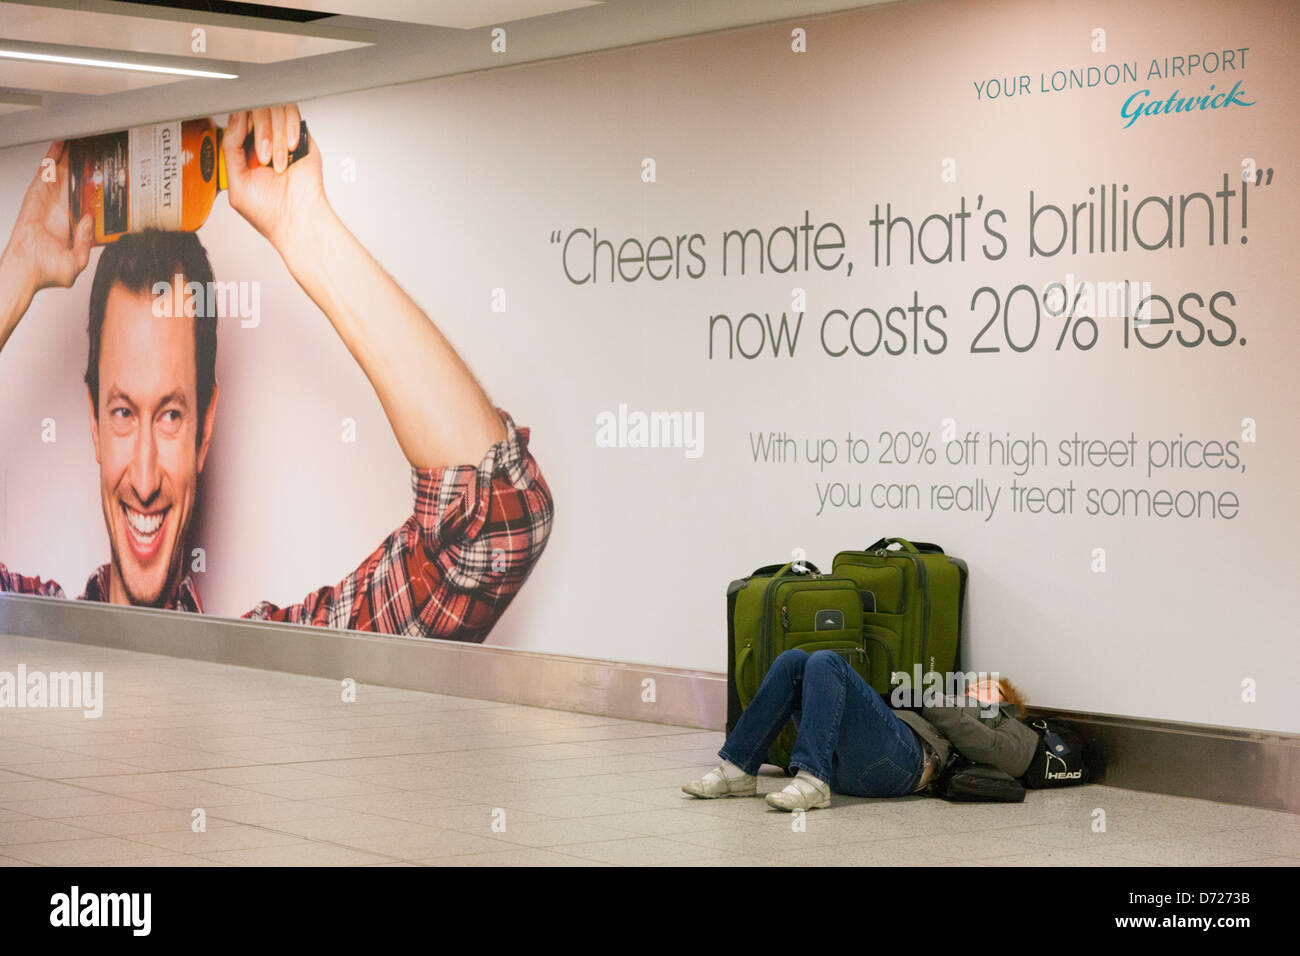 A passenger asleep next to suitcases and underneath a duty free advertisement in Gatwick Airport departures - Stock Image